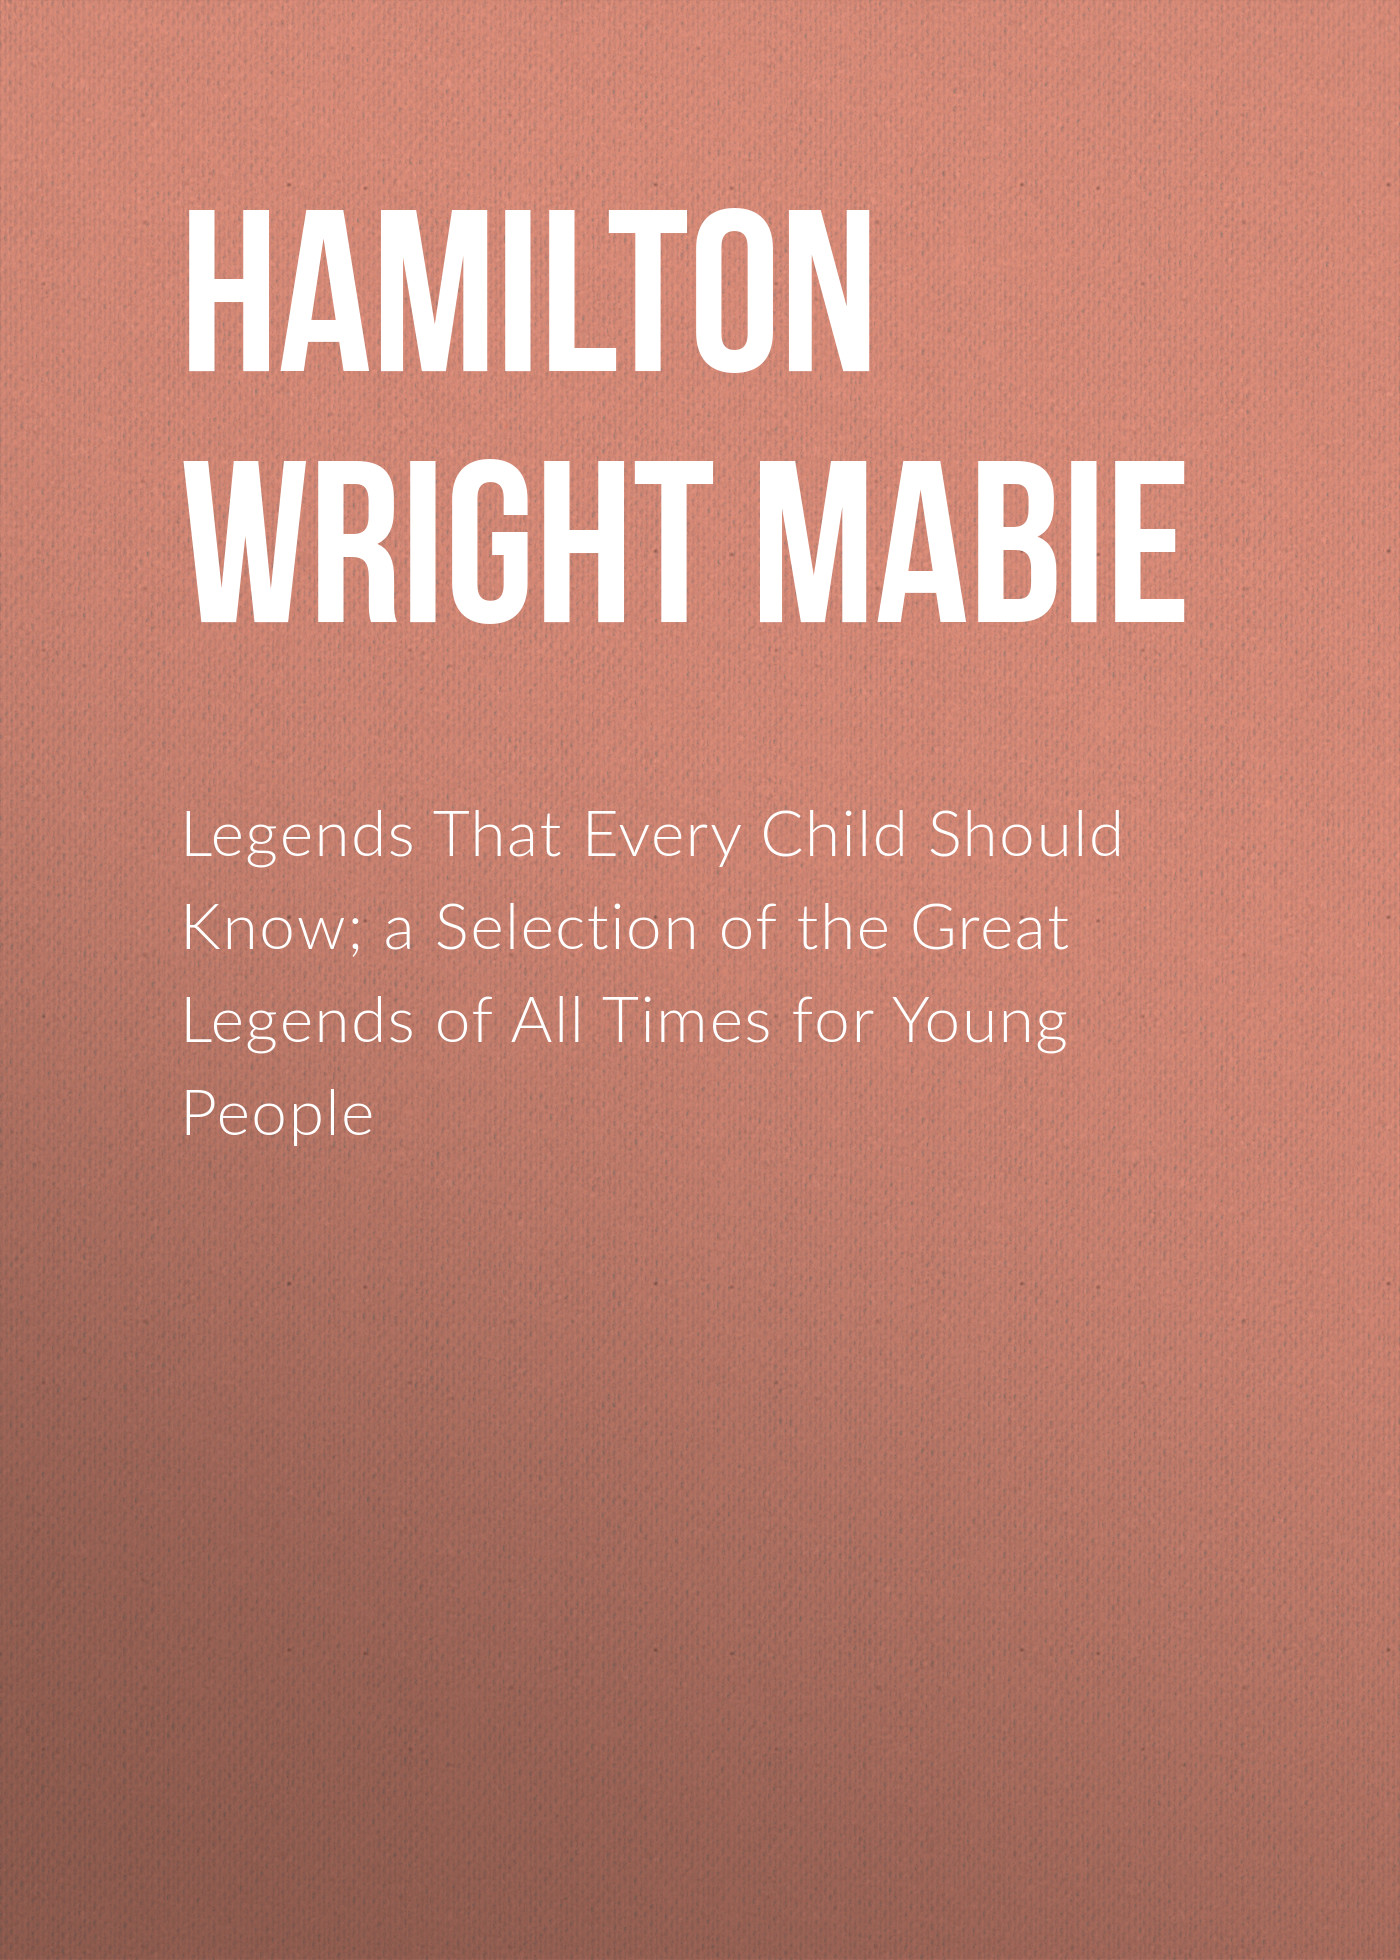 Hamilton Wright Mabie Legends That Every Child Should Know; a Selection of the Great Legends of All Times for Young People mary schell bacon songs that every child should know a selection of the best songs of all nations for young people